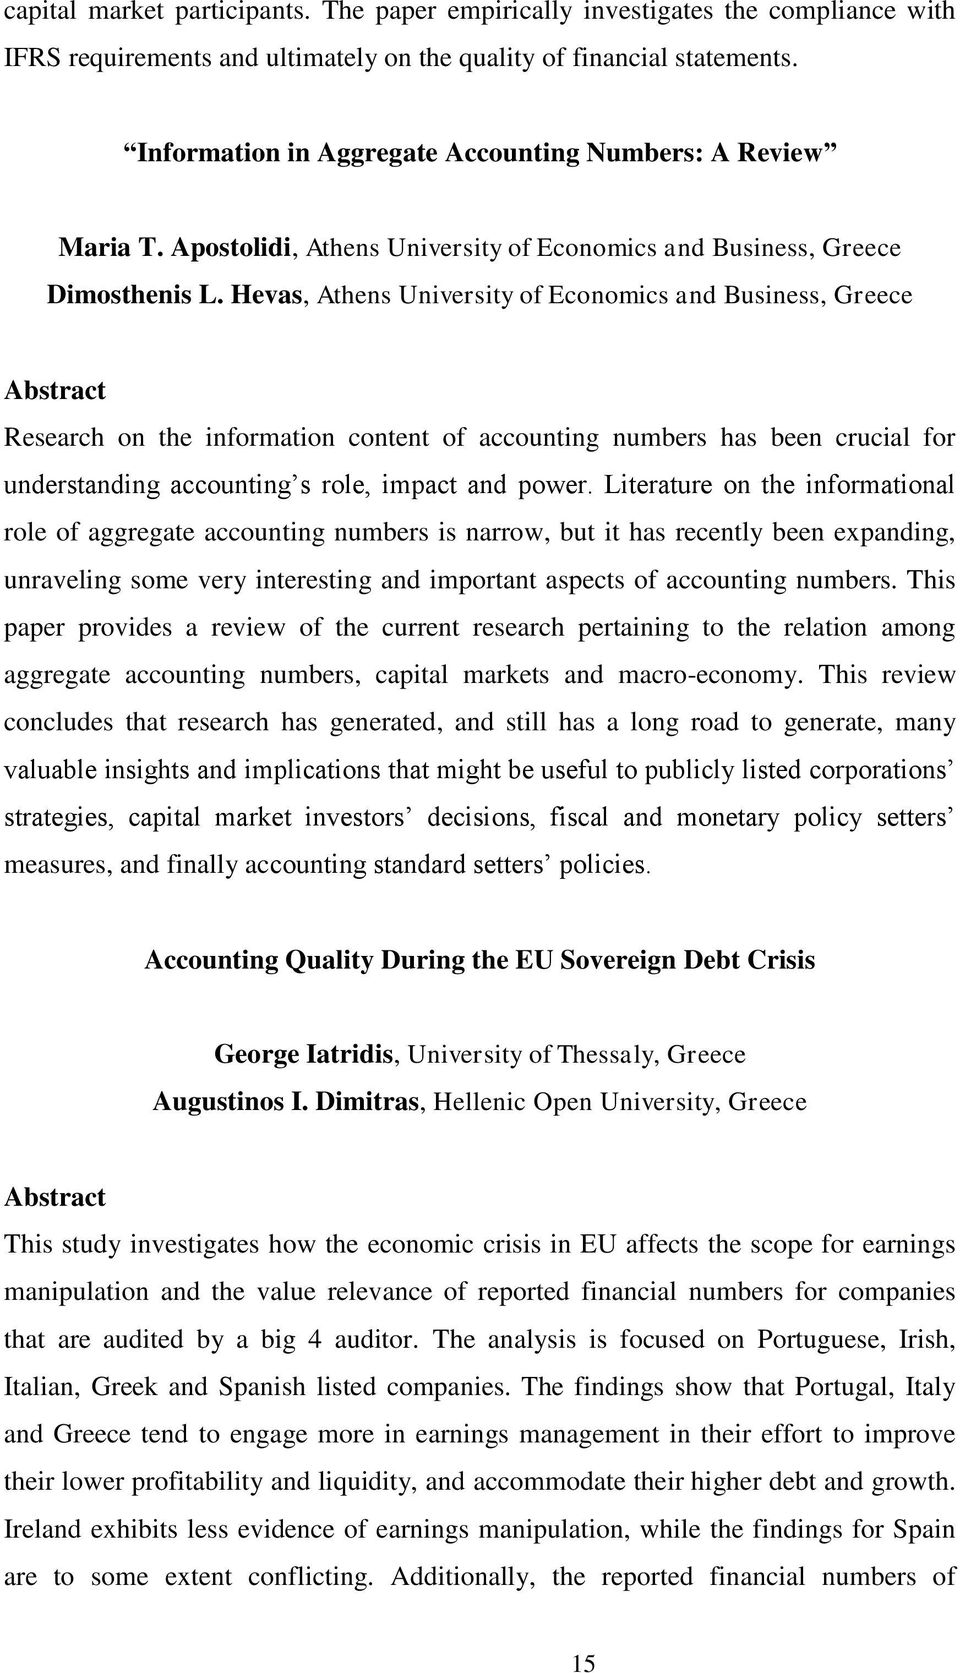 Hevas, Athens University of Economics and Business, Greece Research on the information content of accounting numbers has been crucial for understanding accounting s role, impact and power.